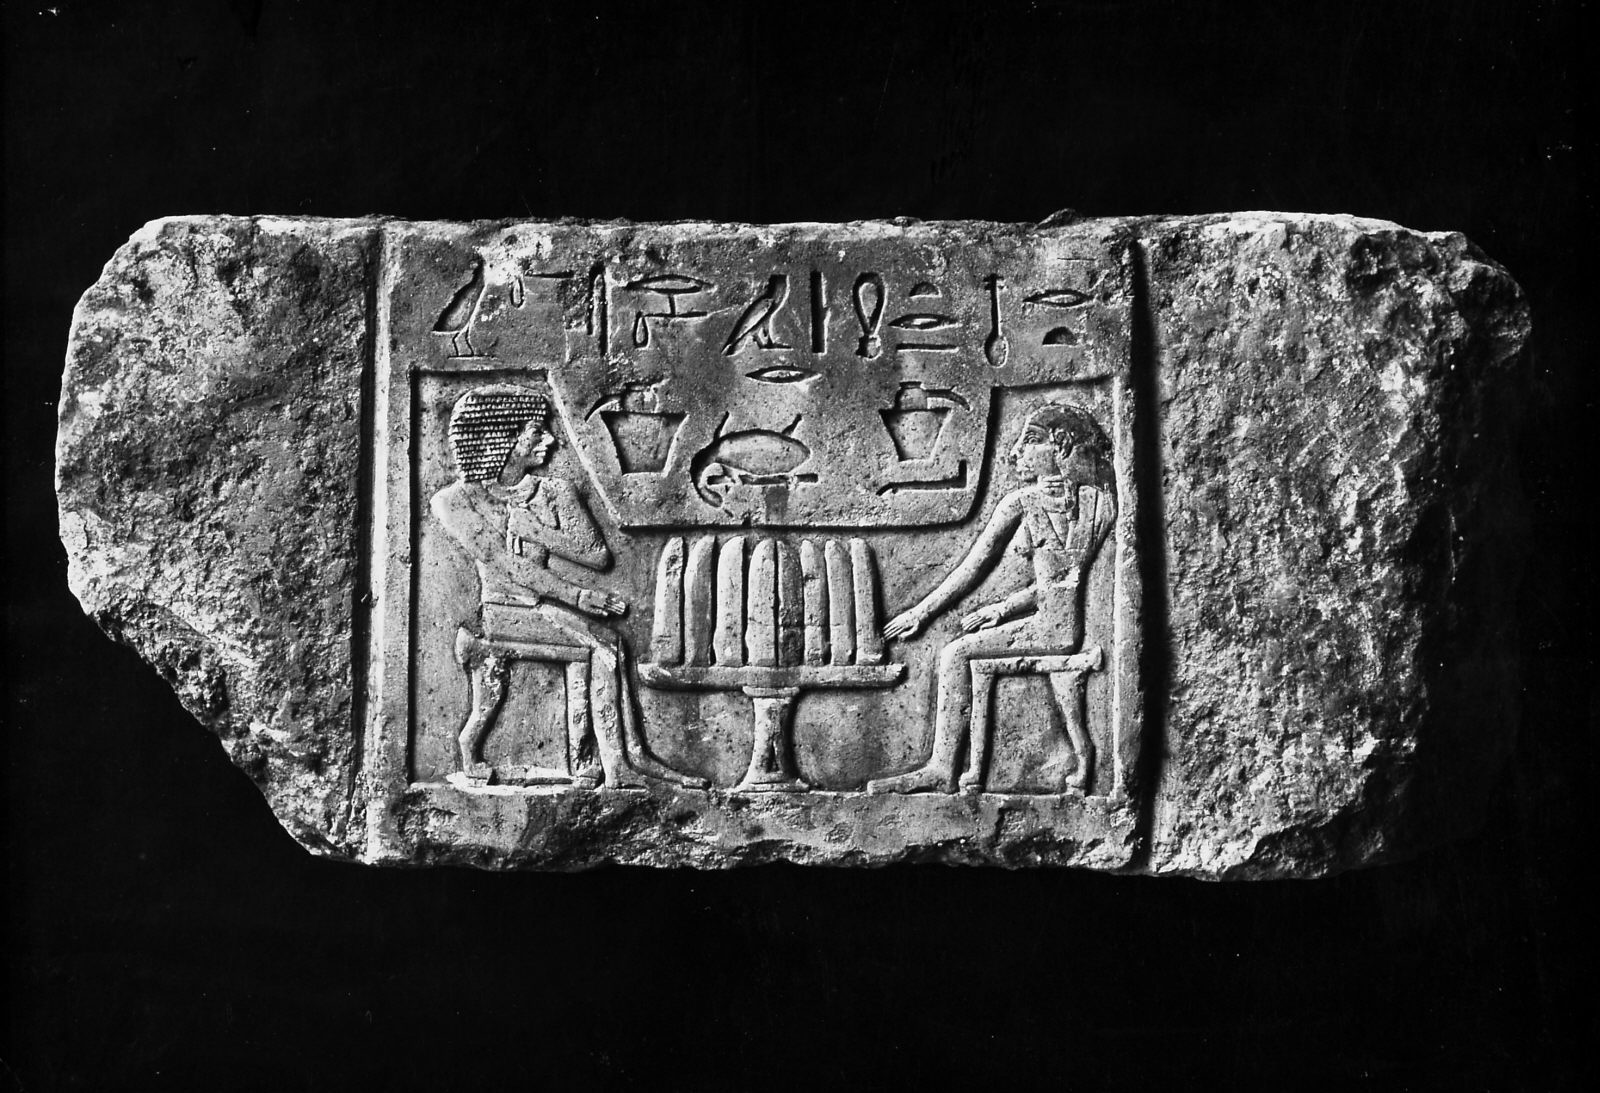 False door tablet (depicting Seshemu and his wife Nefret seated at offering table) from D 116, shaft S 2163, currently in the Pelizaeus-Museum, Hildesheim (acc. no. 3044). Photo ID KHM_AEOS_II_2781, photo and description courtesy of the Giza Archives maintained by Harvard University and the Museum of Fine Arts Boston, online at Digital Giza.